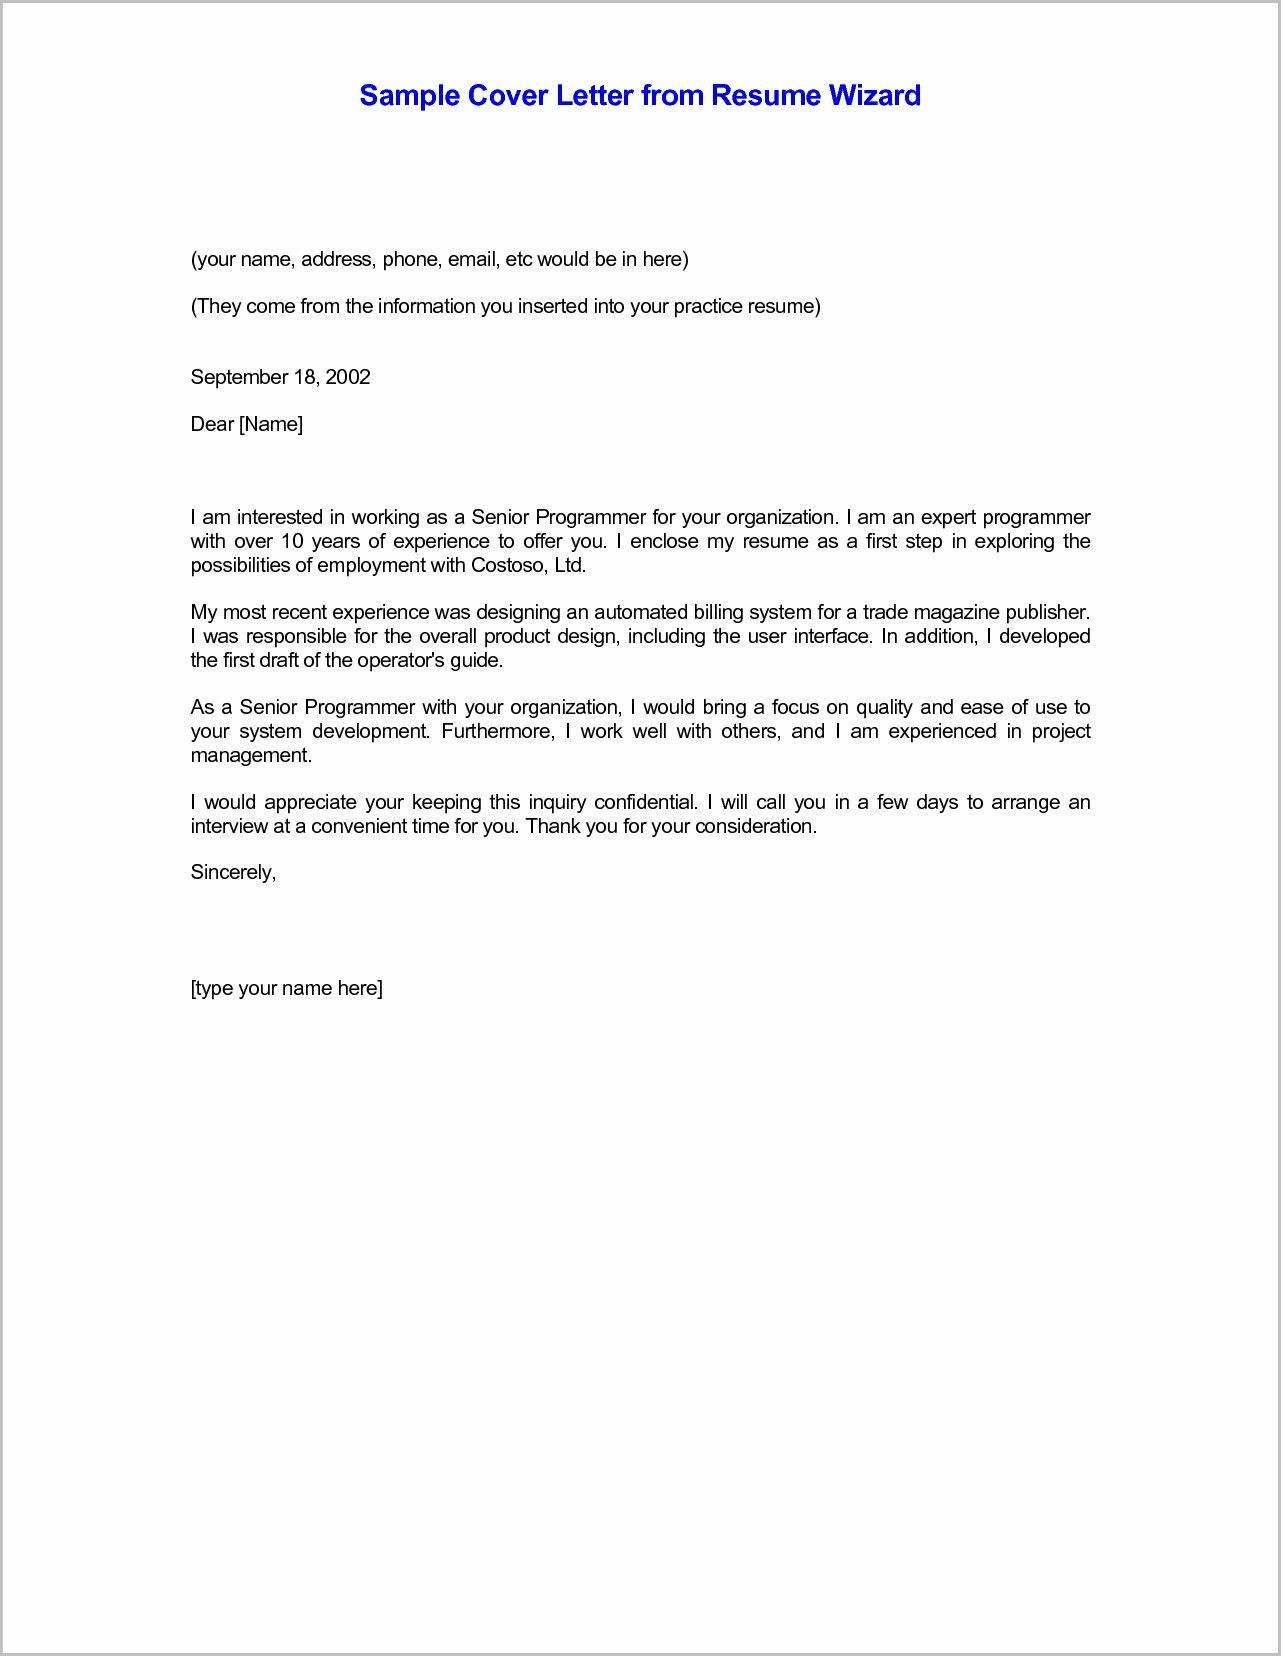 Email with Resume and Cover Letter attached Sample Sample Email with Resume attached - Good Resume Examples